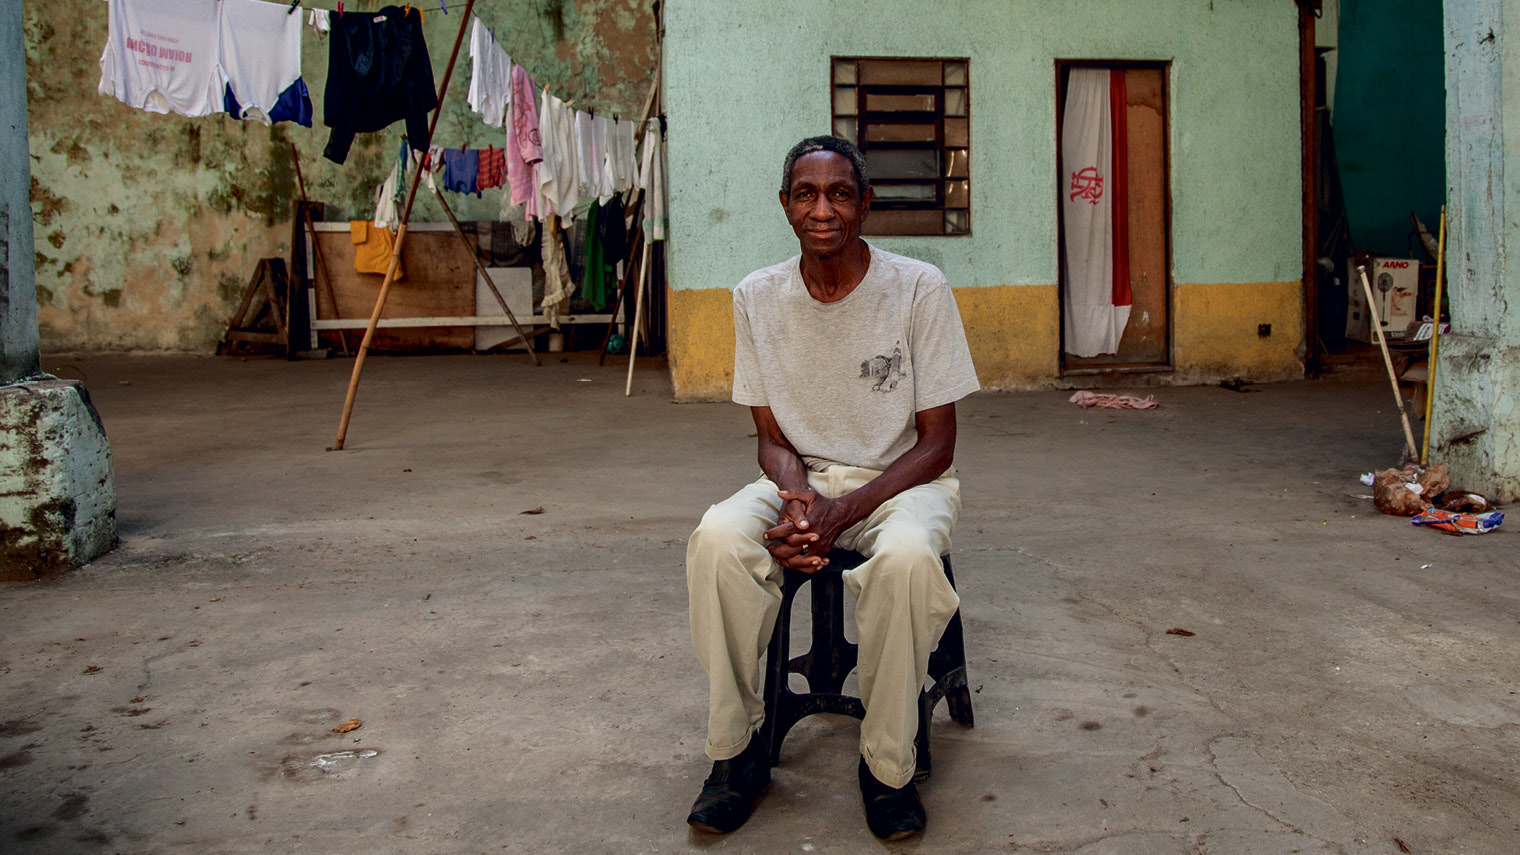 Paulo Cezar de Paula, 62, in the abandoned warehouse his family and two others have been occupying for the past three years. De Paula was evicted from the Quilombo das Guerreiras occupation in 2013 to make space for the Trump Towers Rio